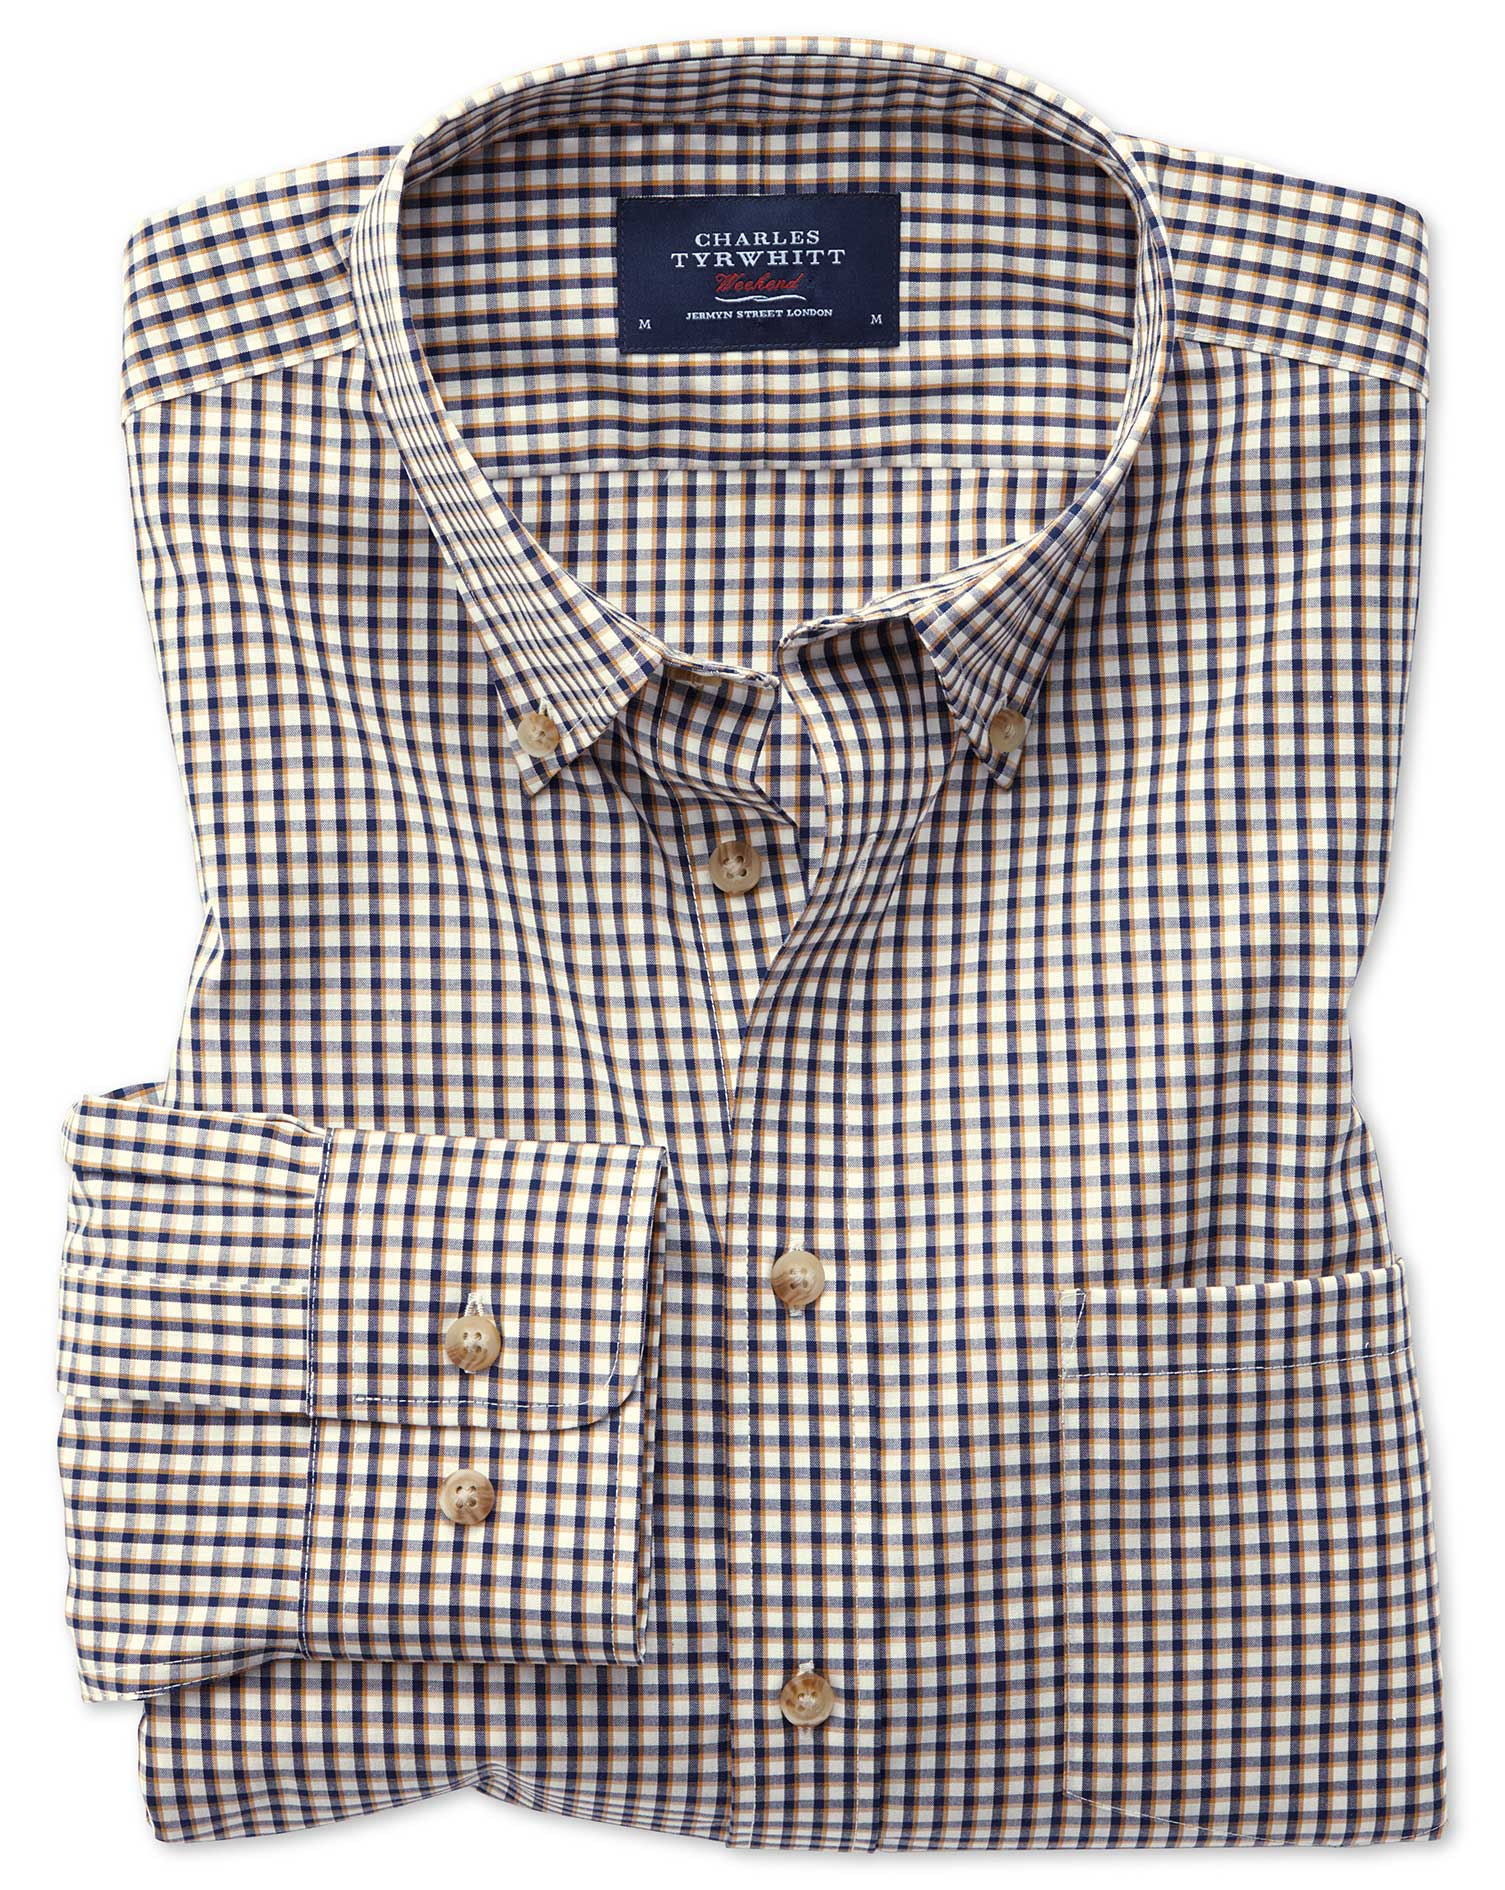 Slim Fit Button-Down Non-Iron Poplin Gold and Blue Gingham Cotton Shirt Single Cuff Size XXL by Char